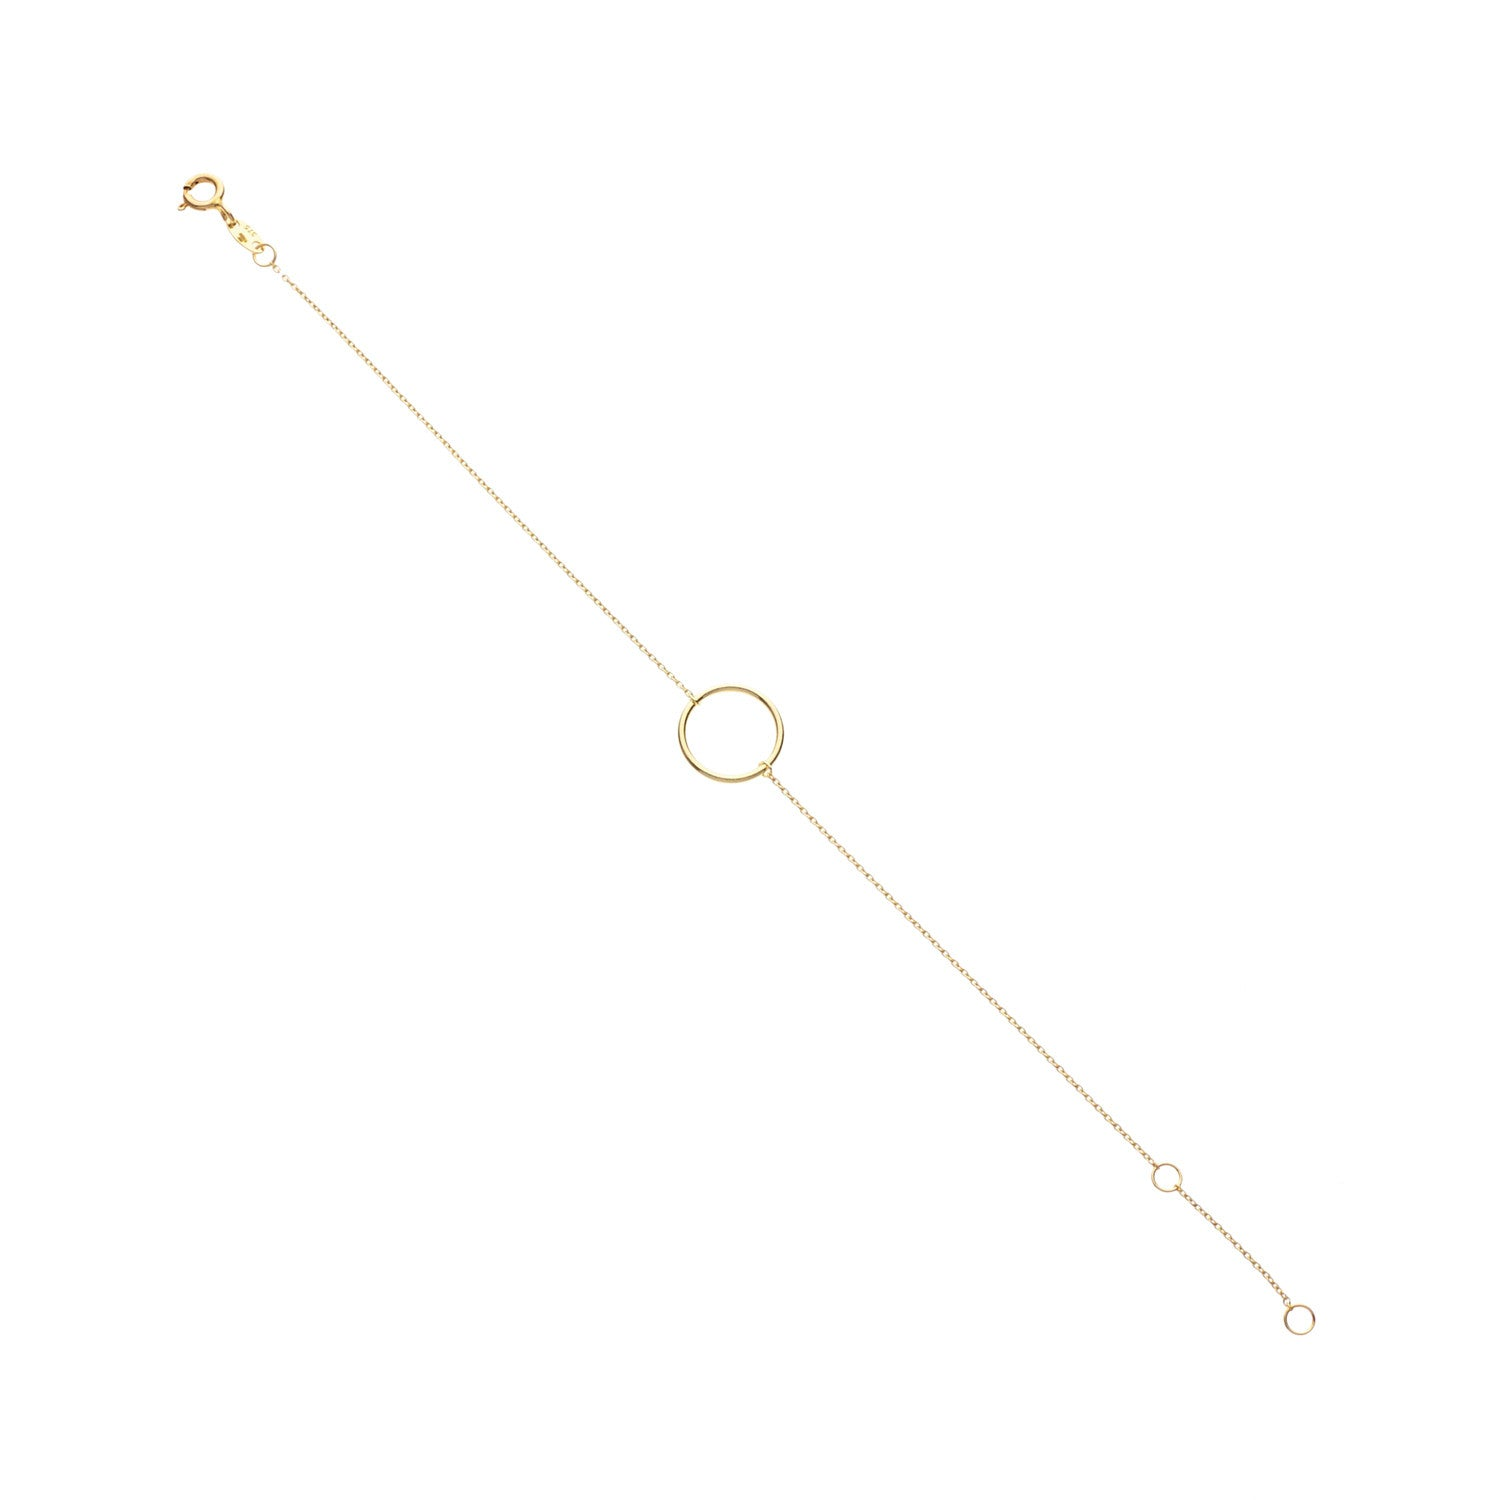 9kt Gold Single Circle Bracelet - MoMuse Jewellery